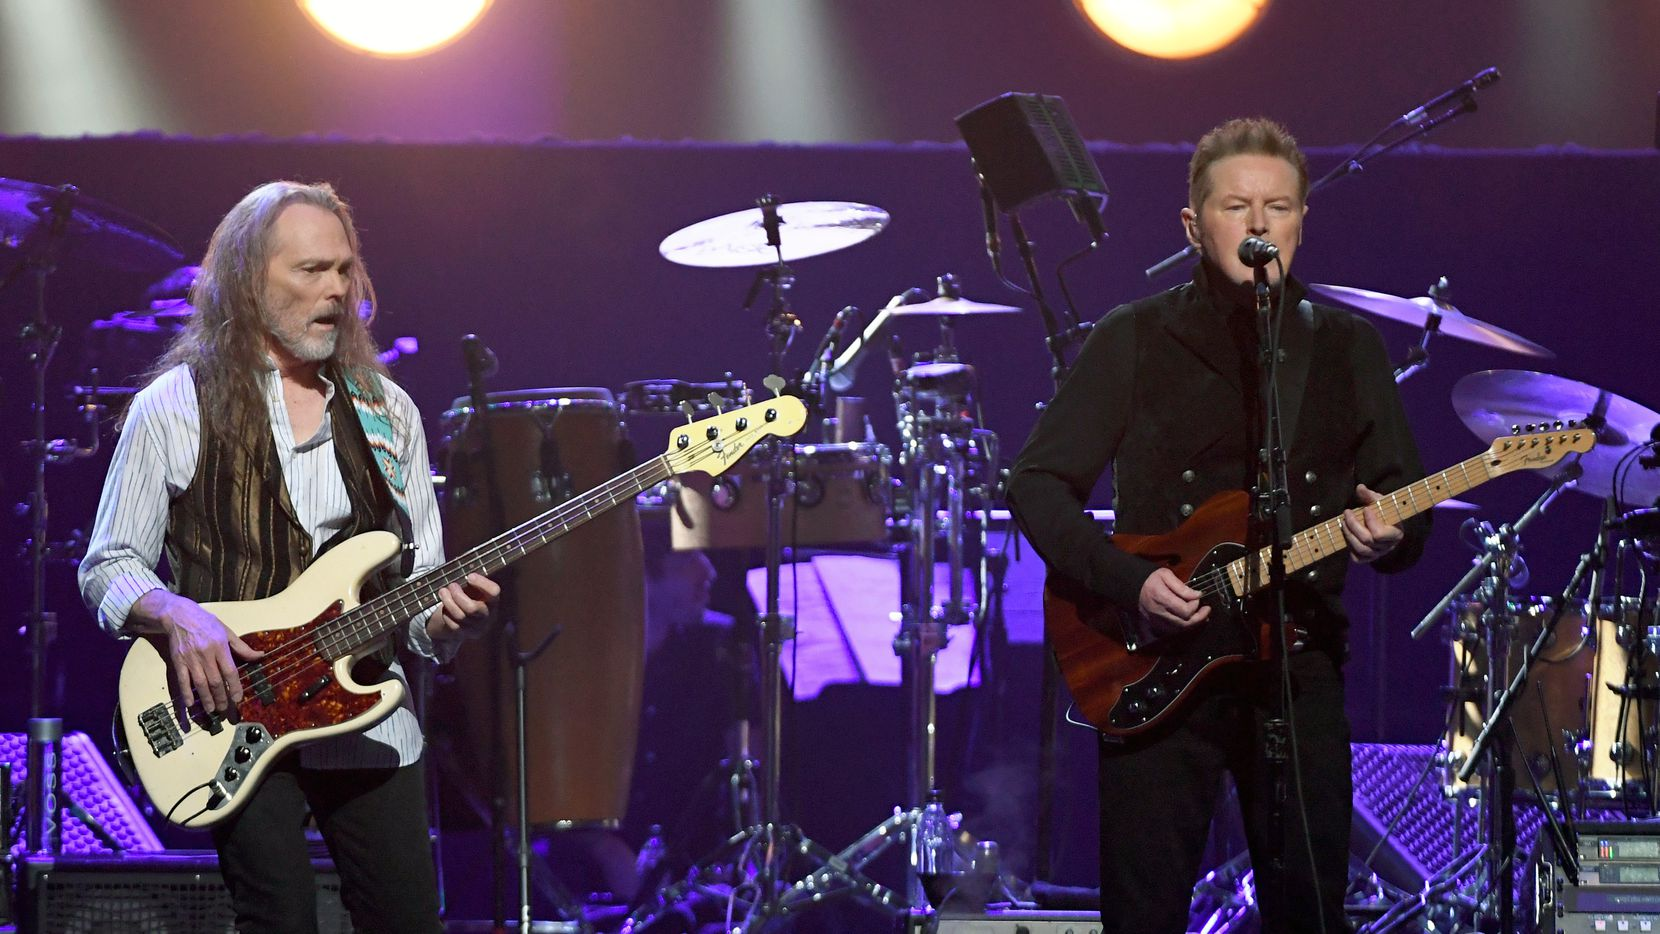 Timothy B. Schmit, izq., y Don Henley de the Eagles en un concierto en MGM Grand Garden Arena de Las Vegas, Nevada.